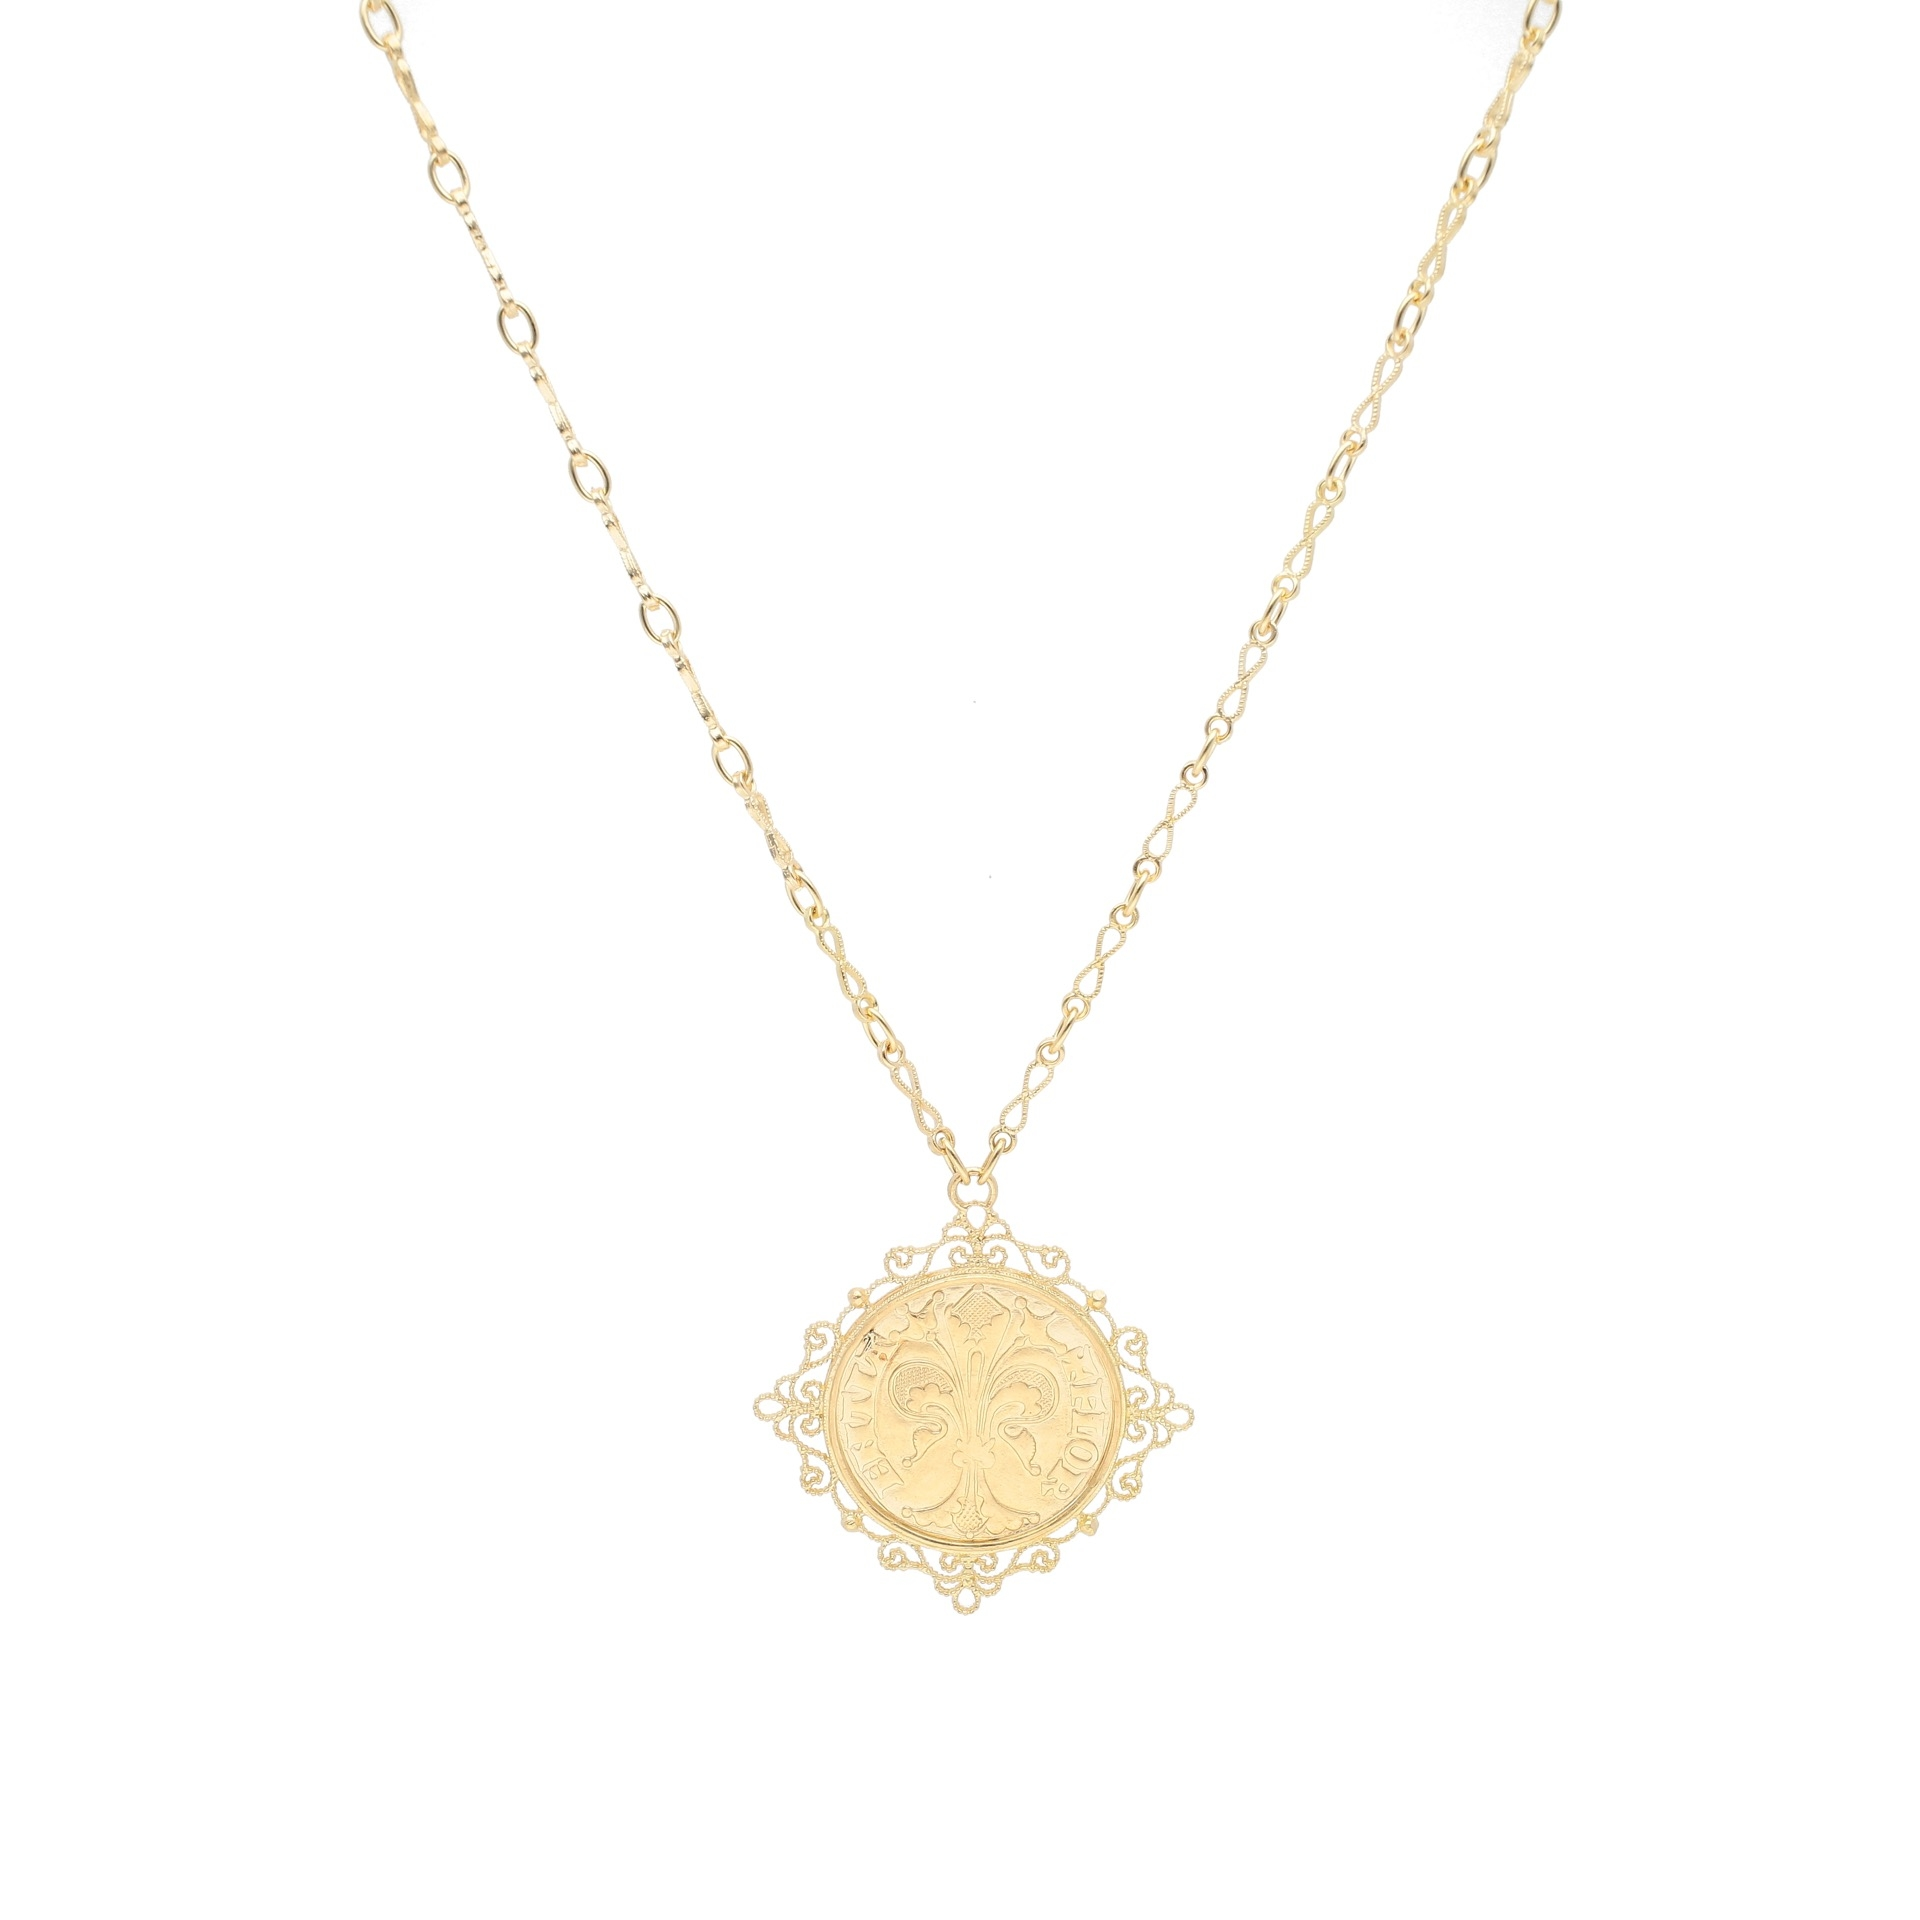 Florentine coin pendant necklace in 18kt yellow gold